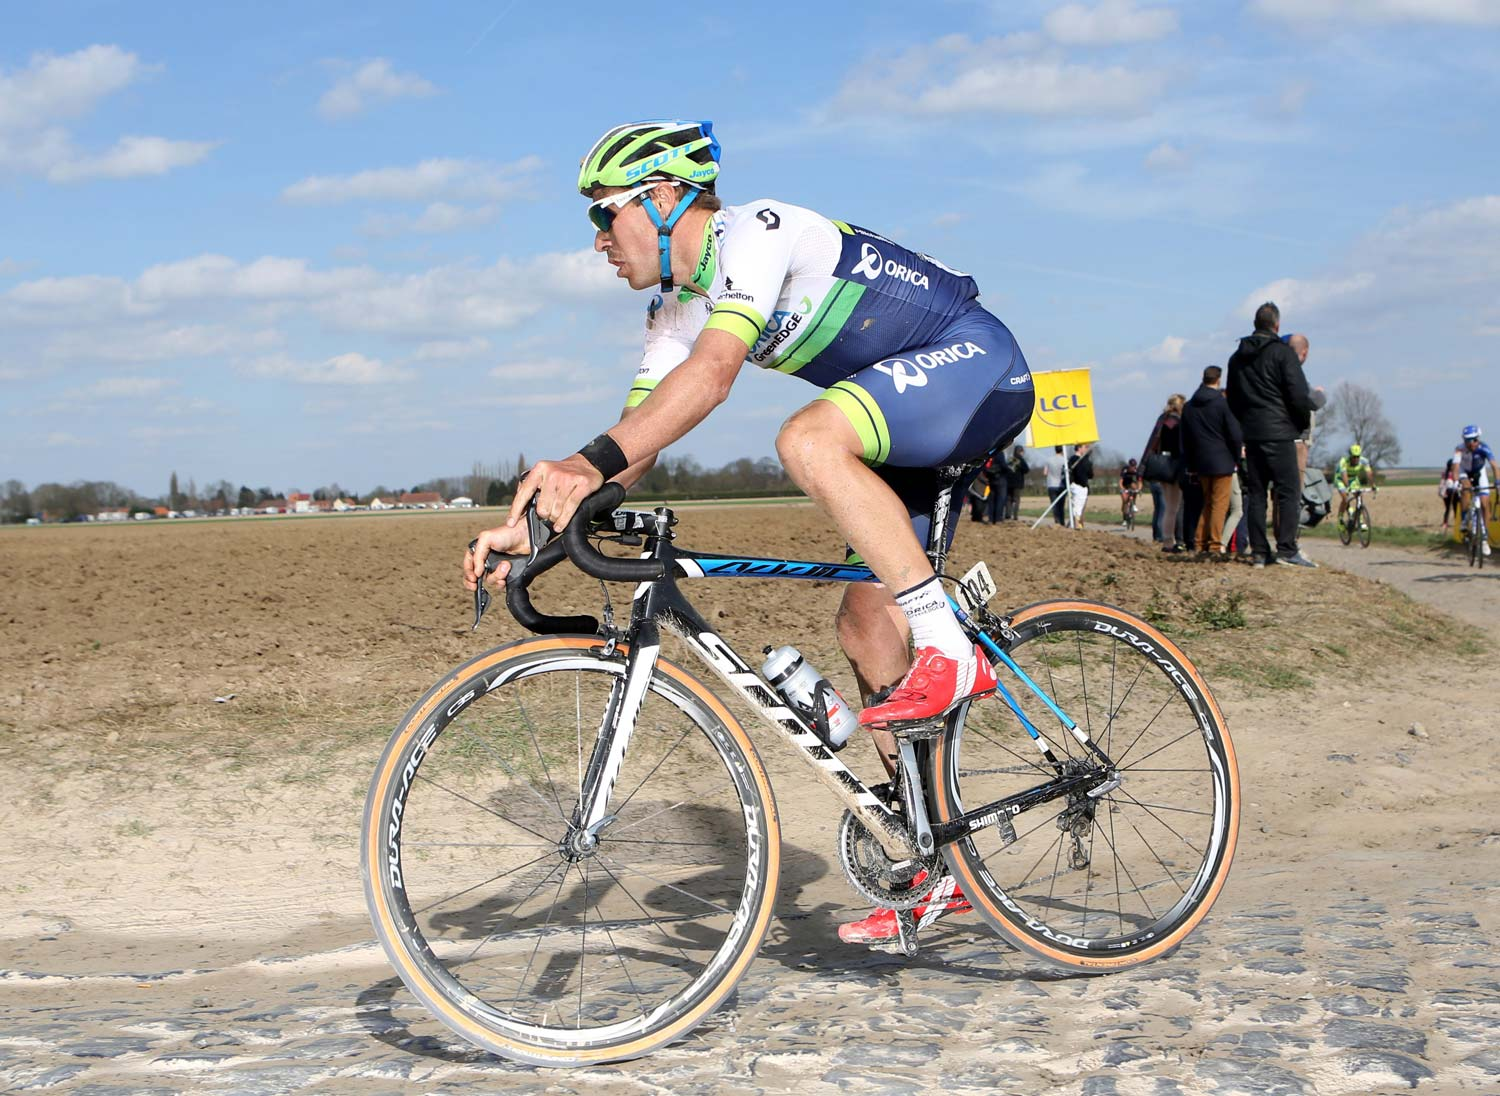 Docker during Paris-Roubaix, one of his favourite races, in 2015. Photo: Graham Watson